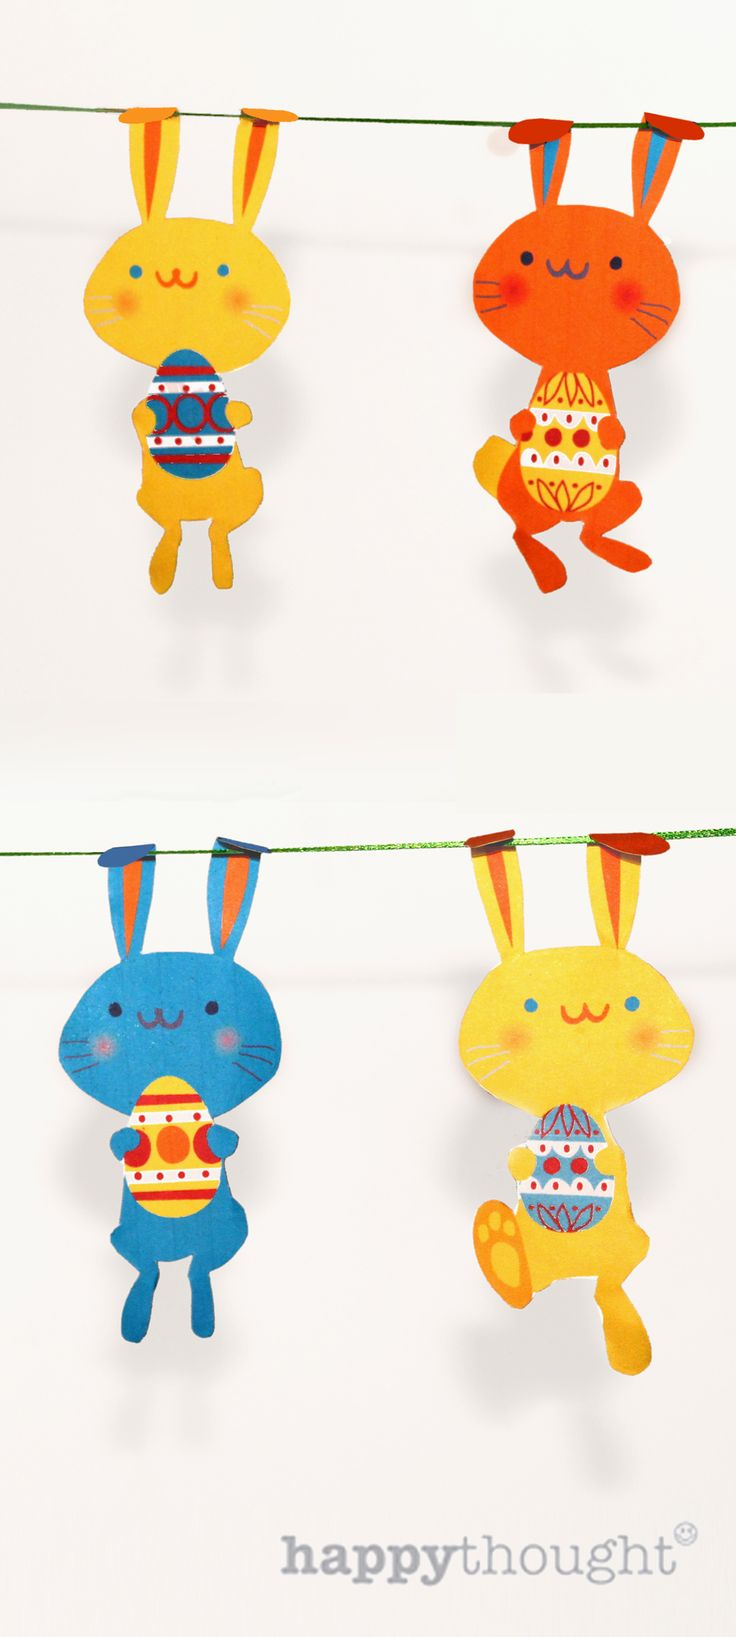 bunny printables from Happythought~